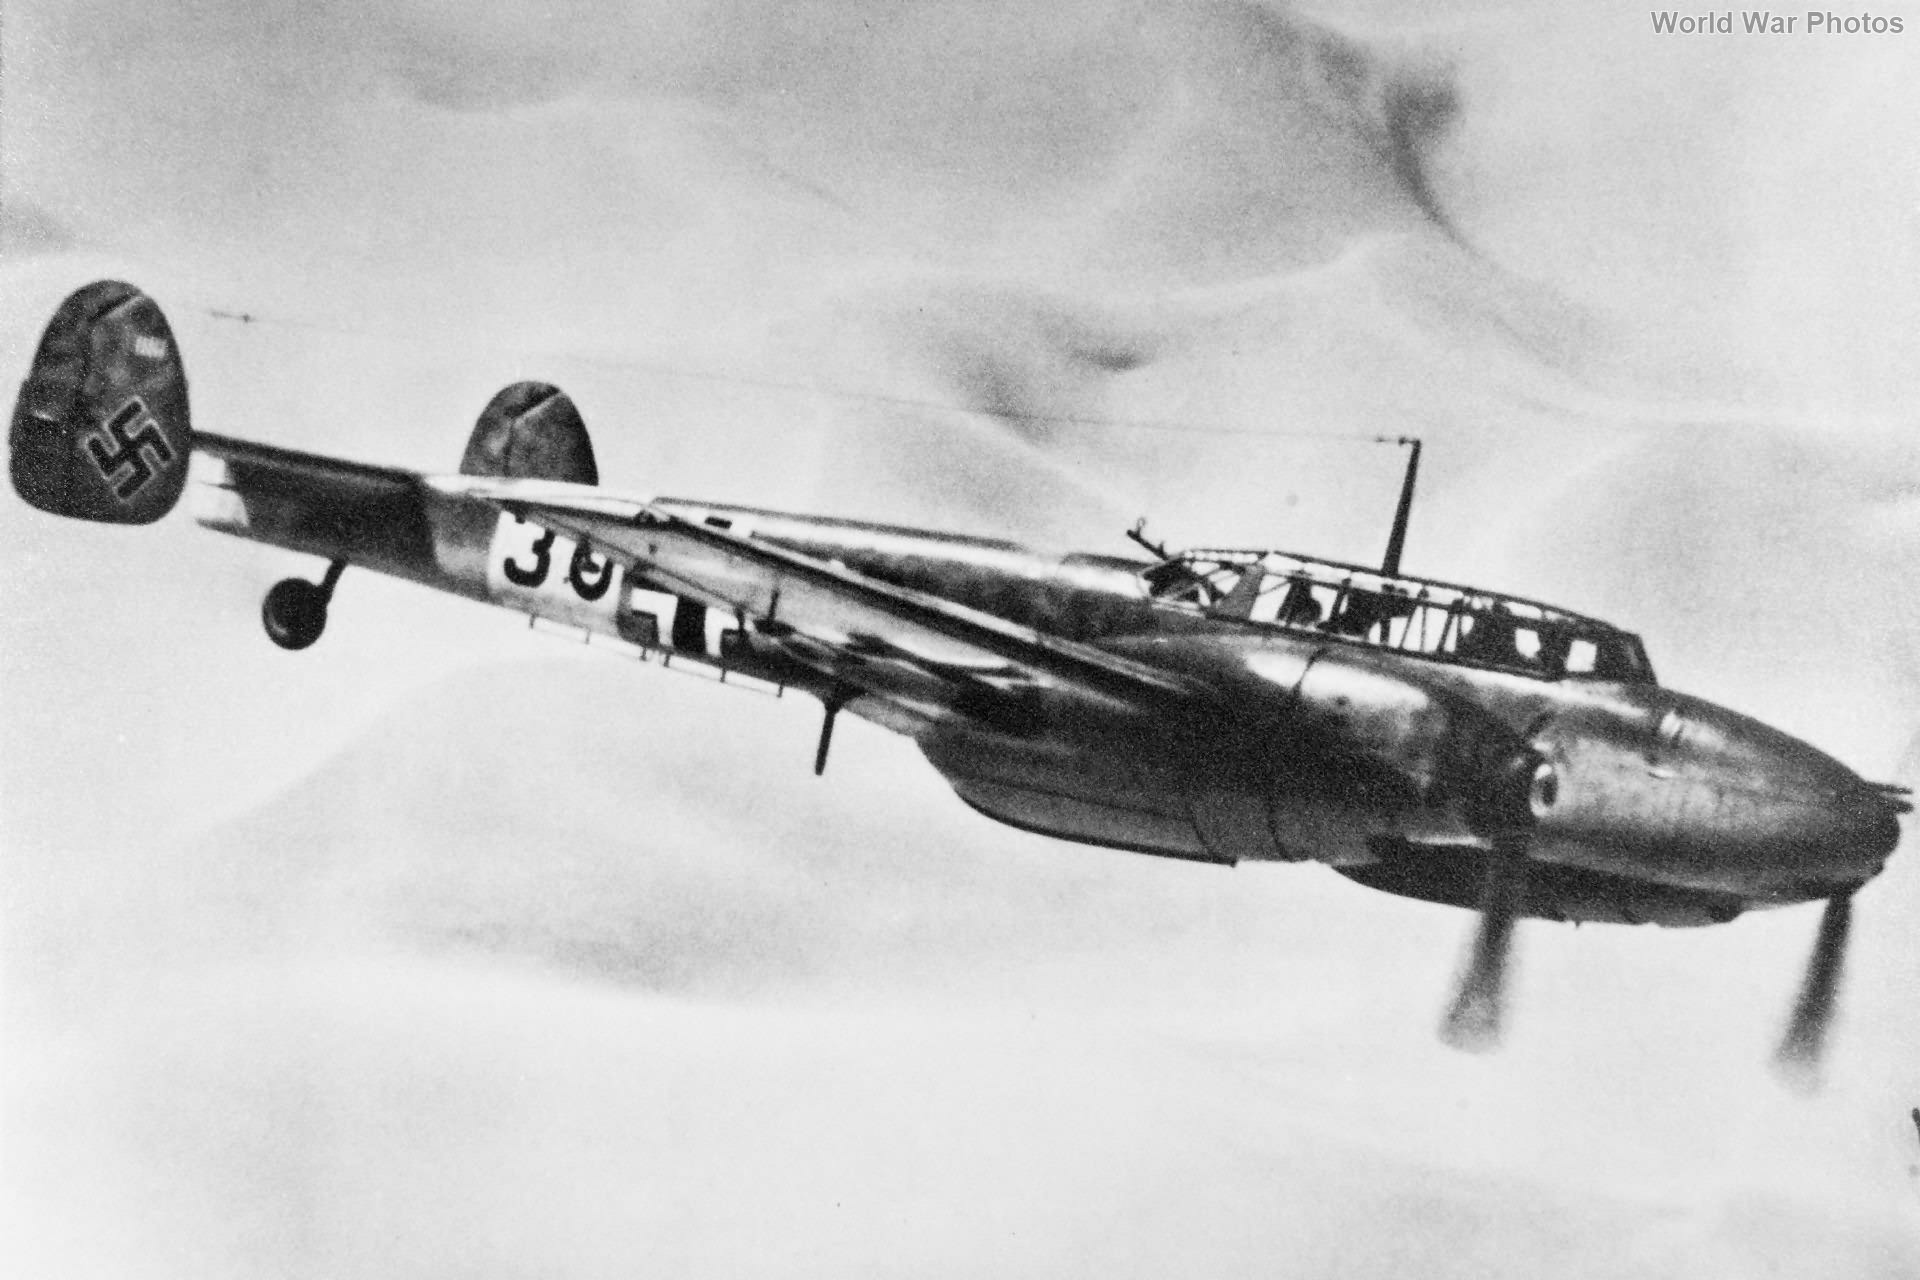 Bf 110 of the ZG26